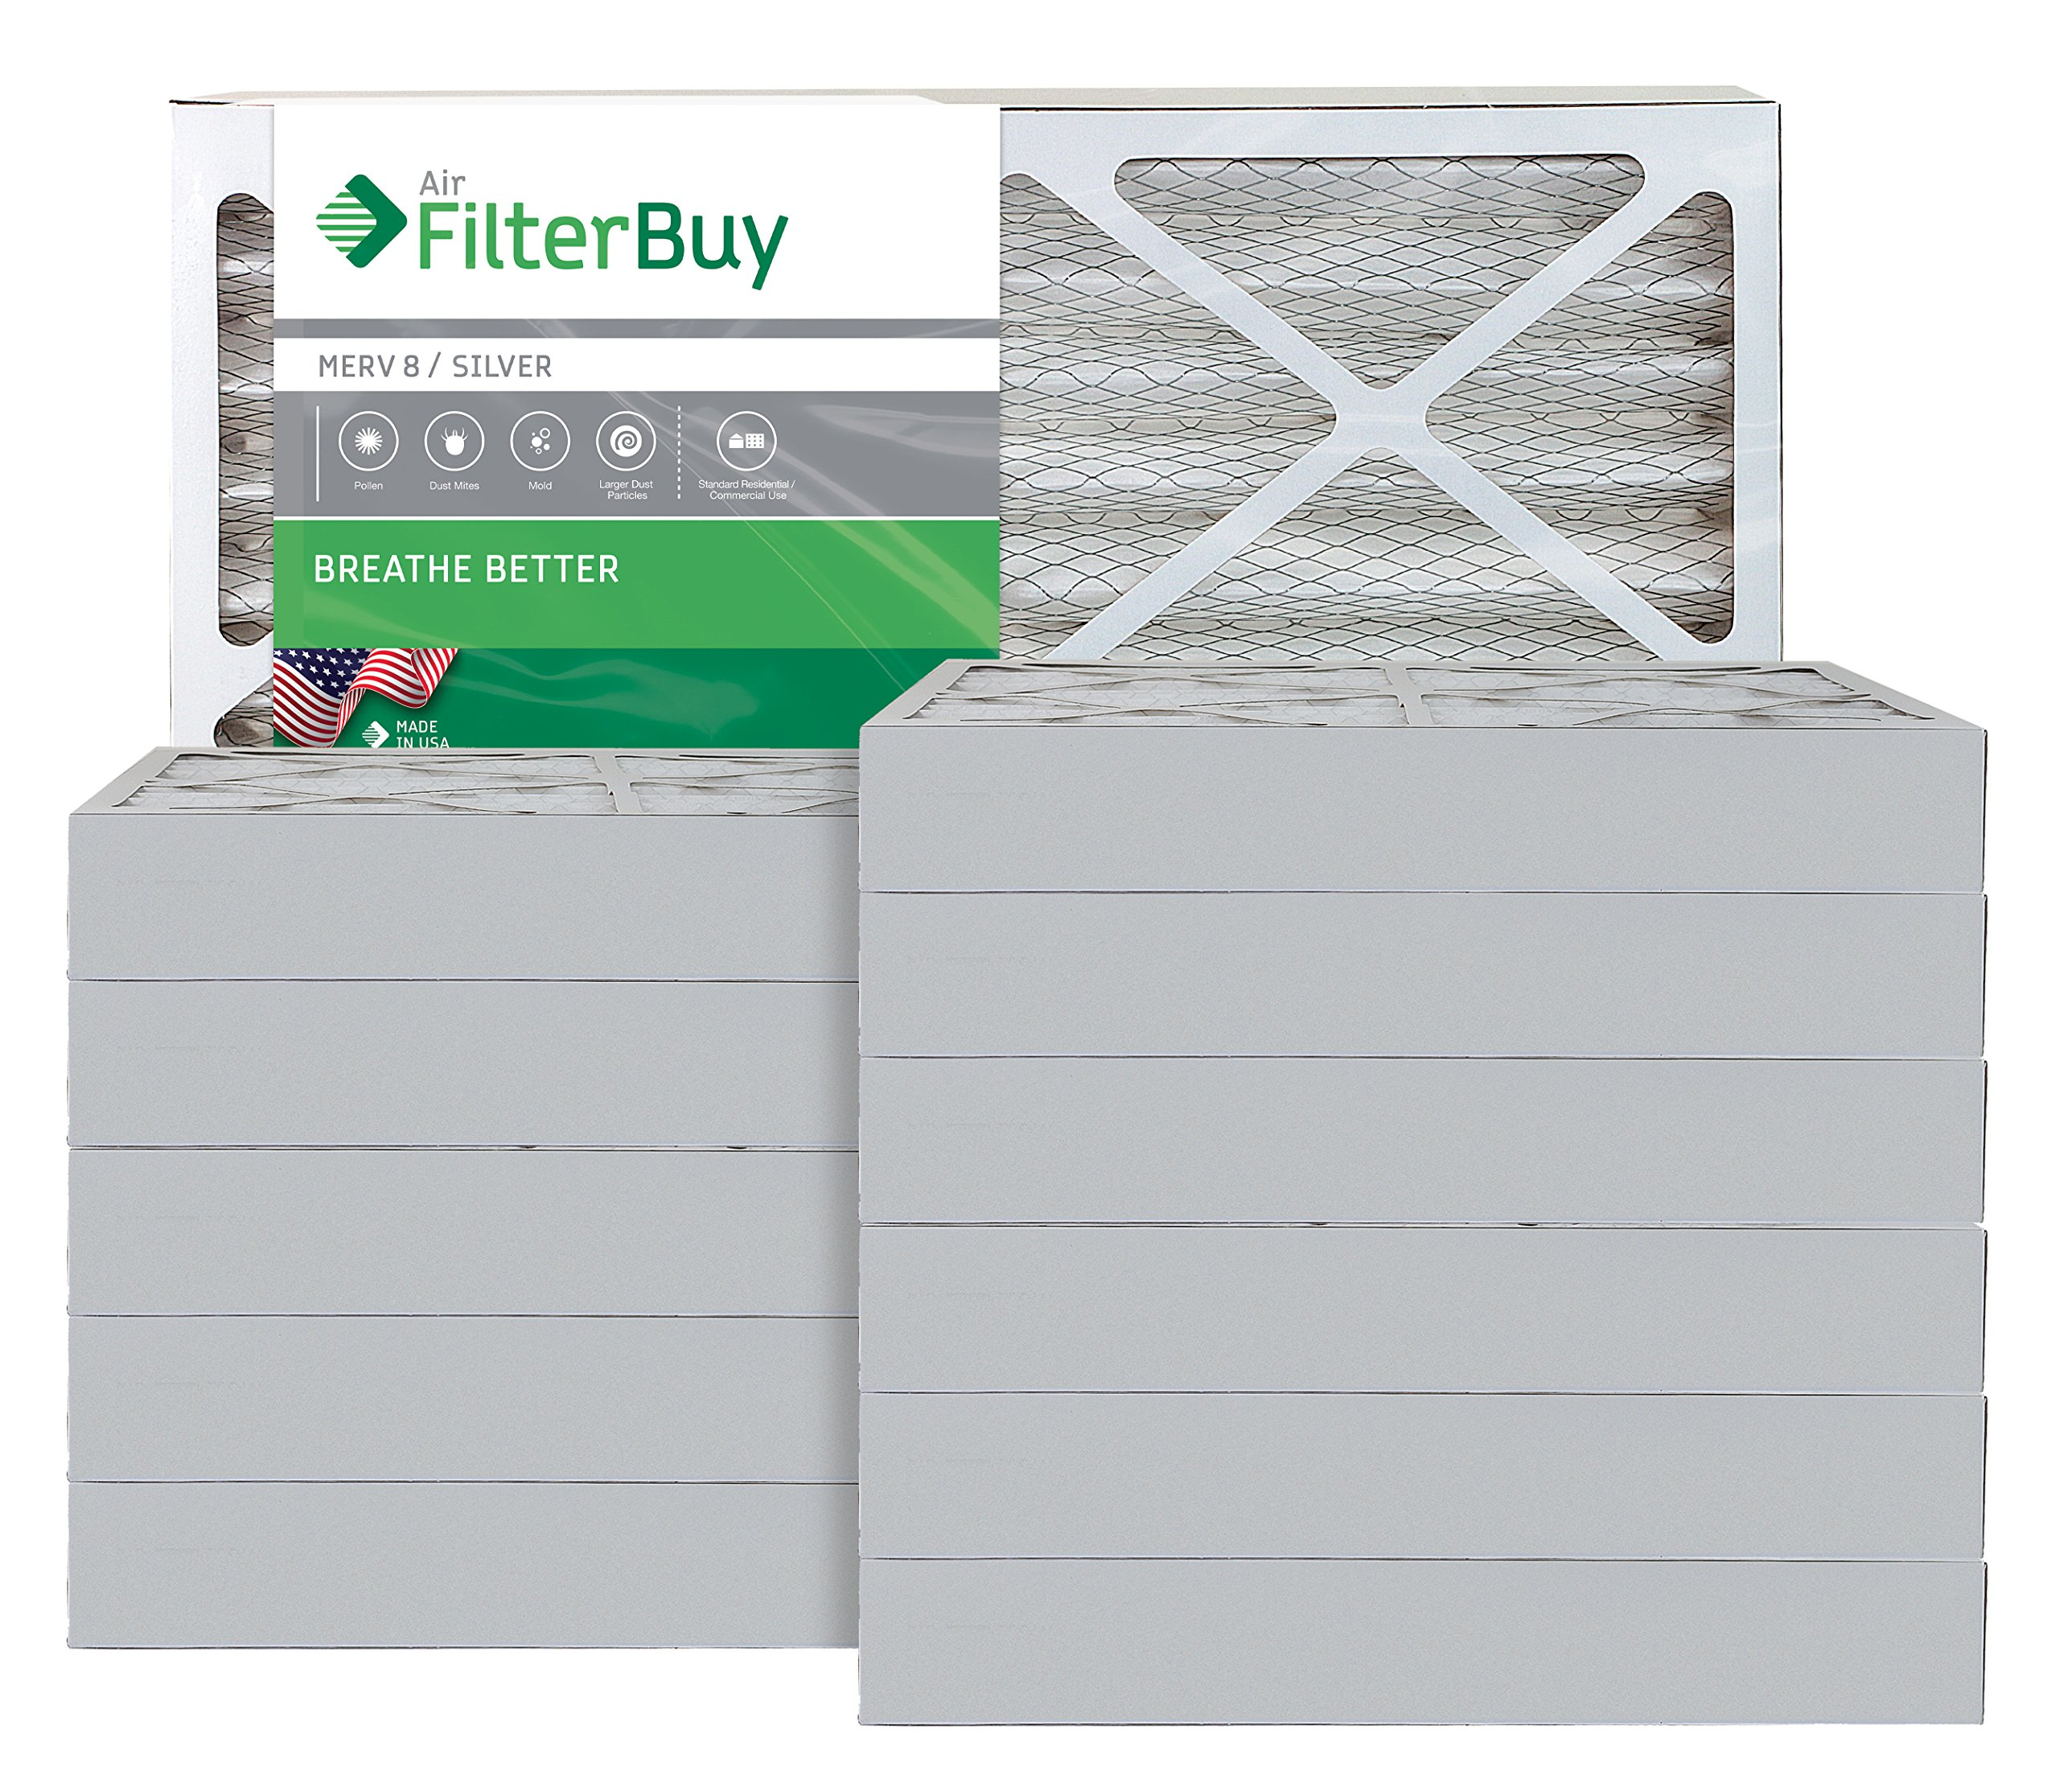 AFB Silver MERV 8 20x25x4 Pleated AC Furnace Air Filter. Pack of 12 Filters. 100% produced in the USA.